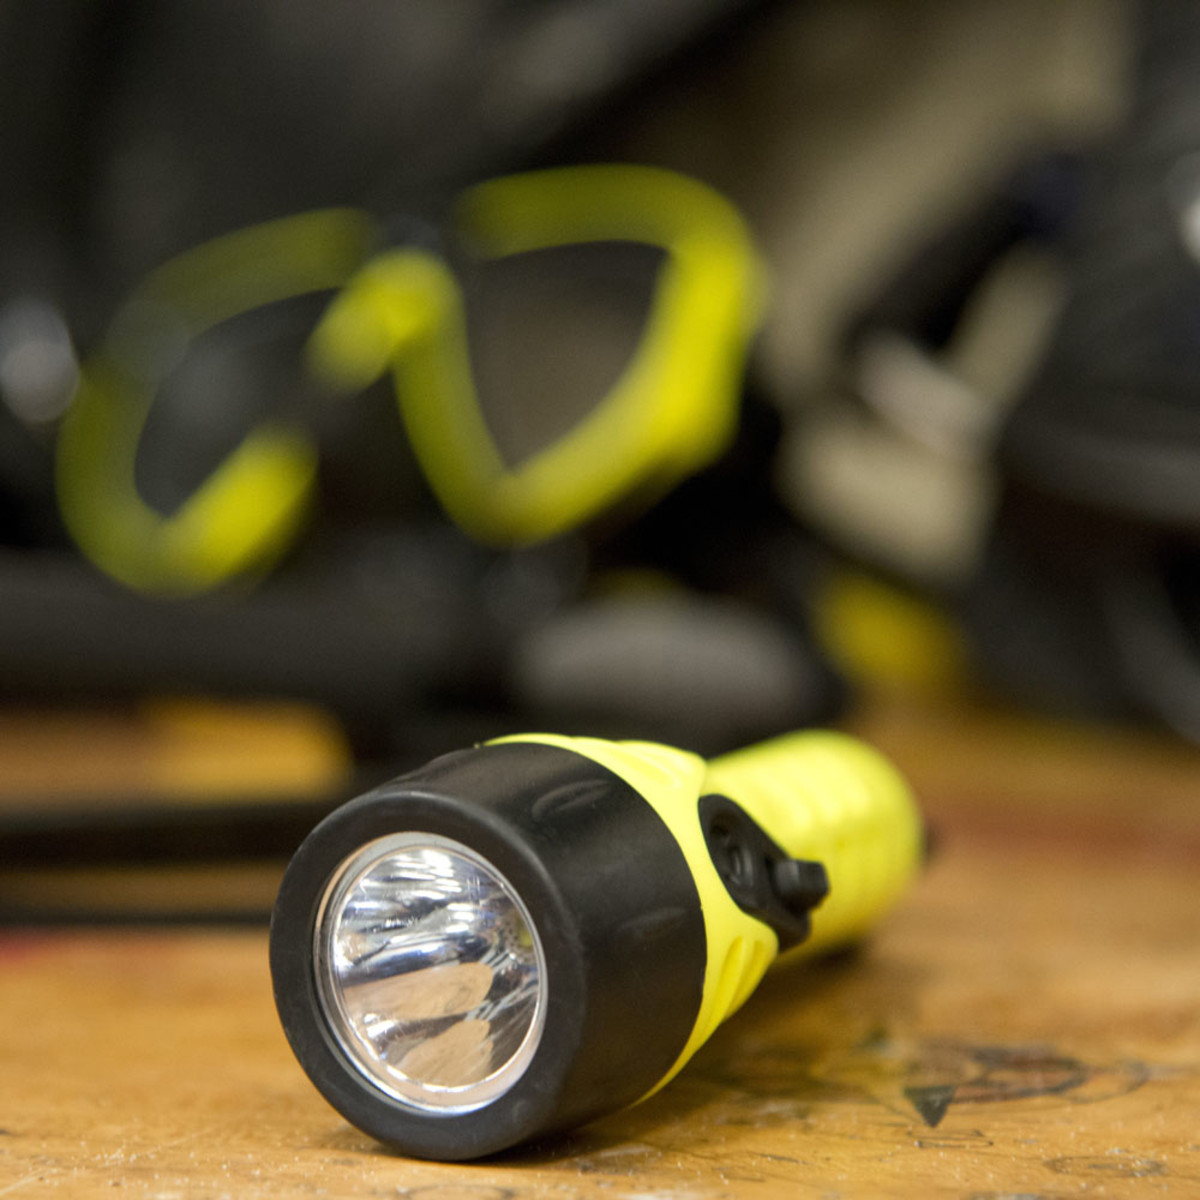 A flashlight is a must have active signal to have aboard your boat or on your person while boating.